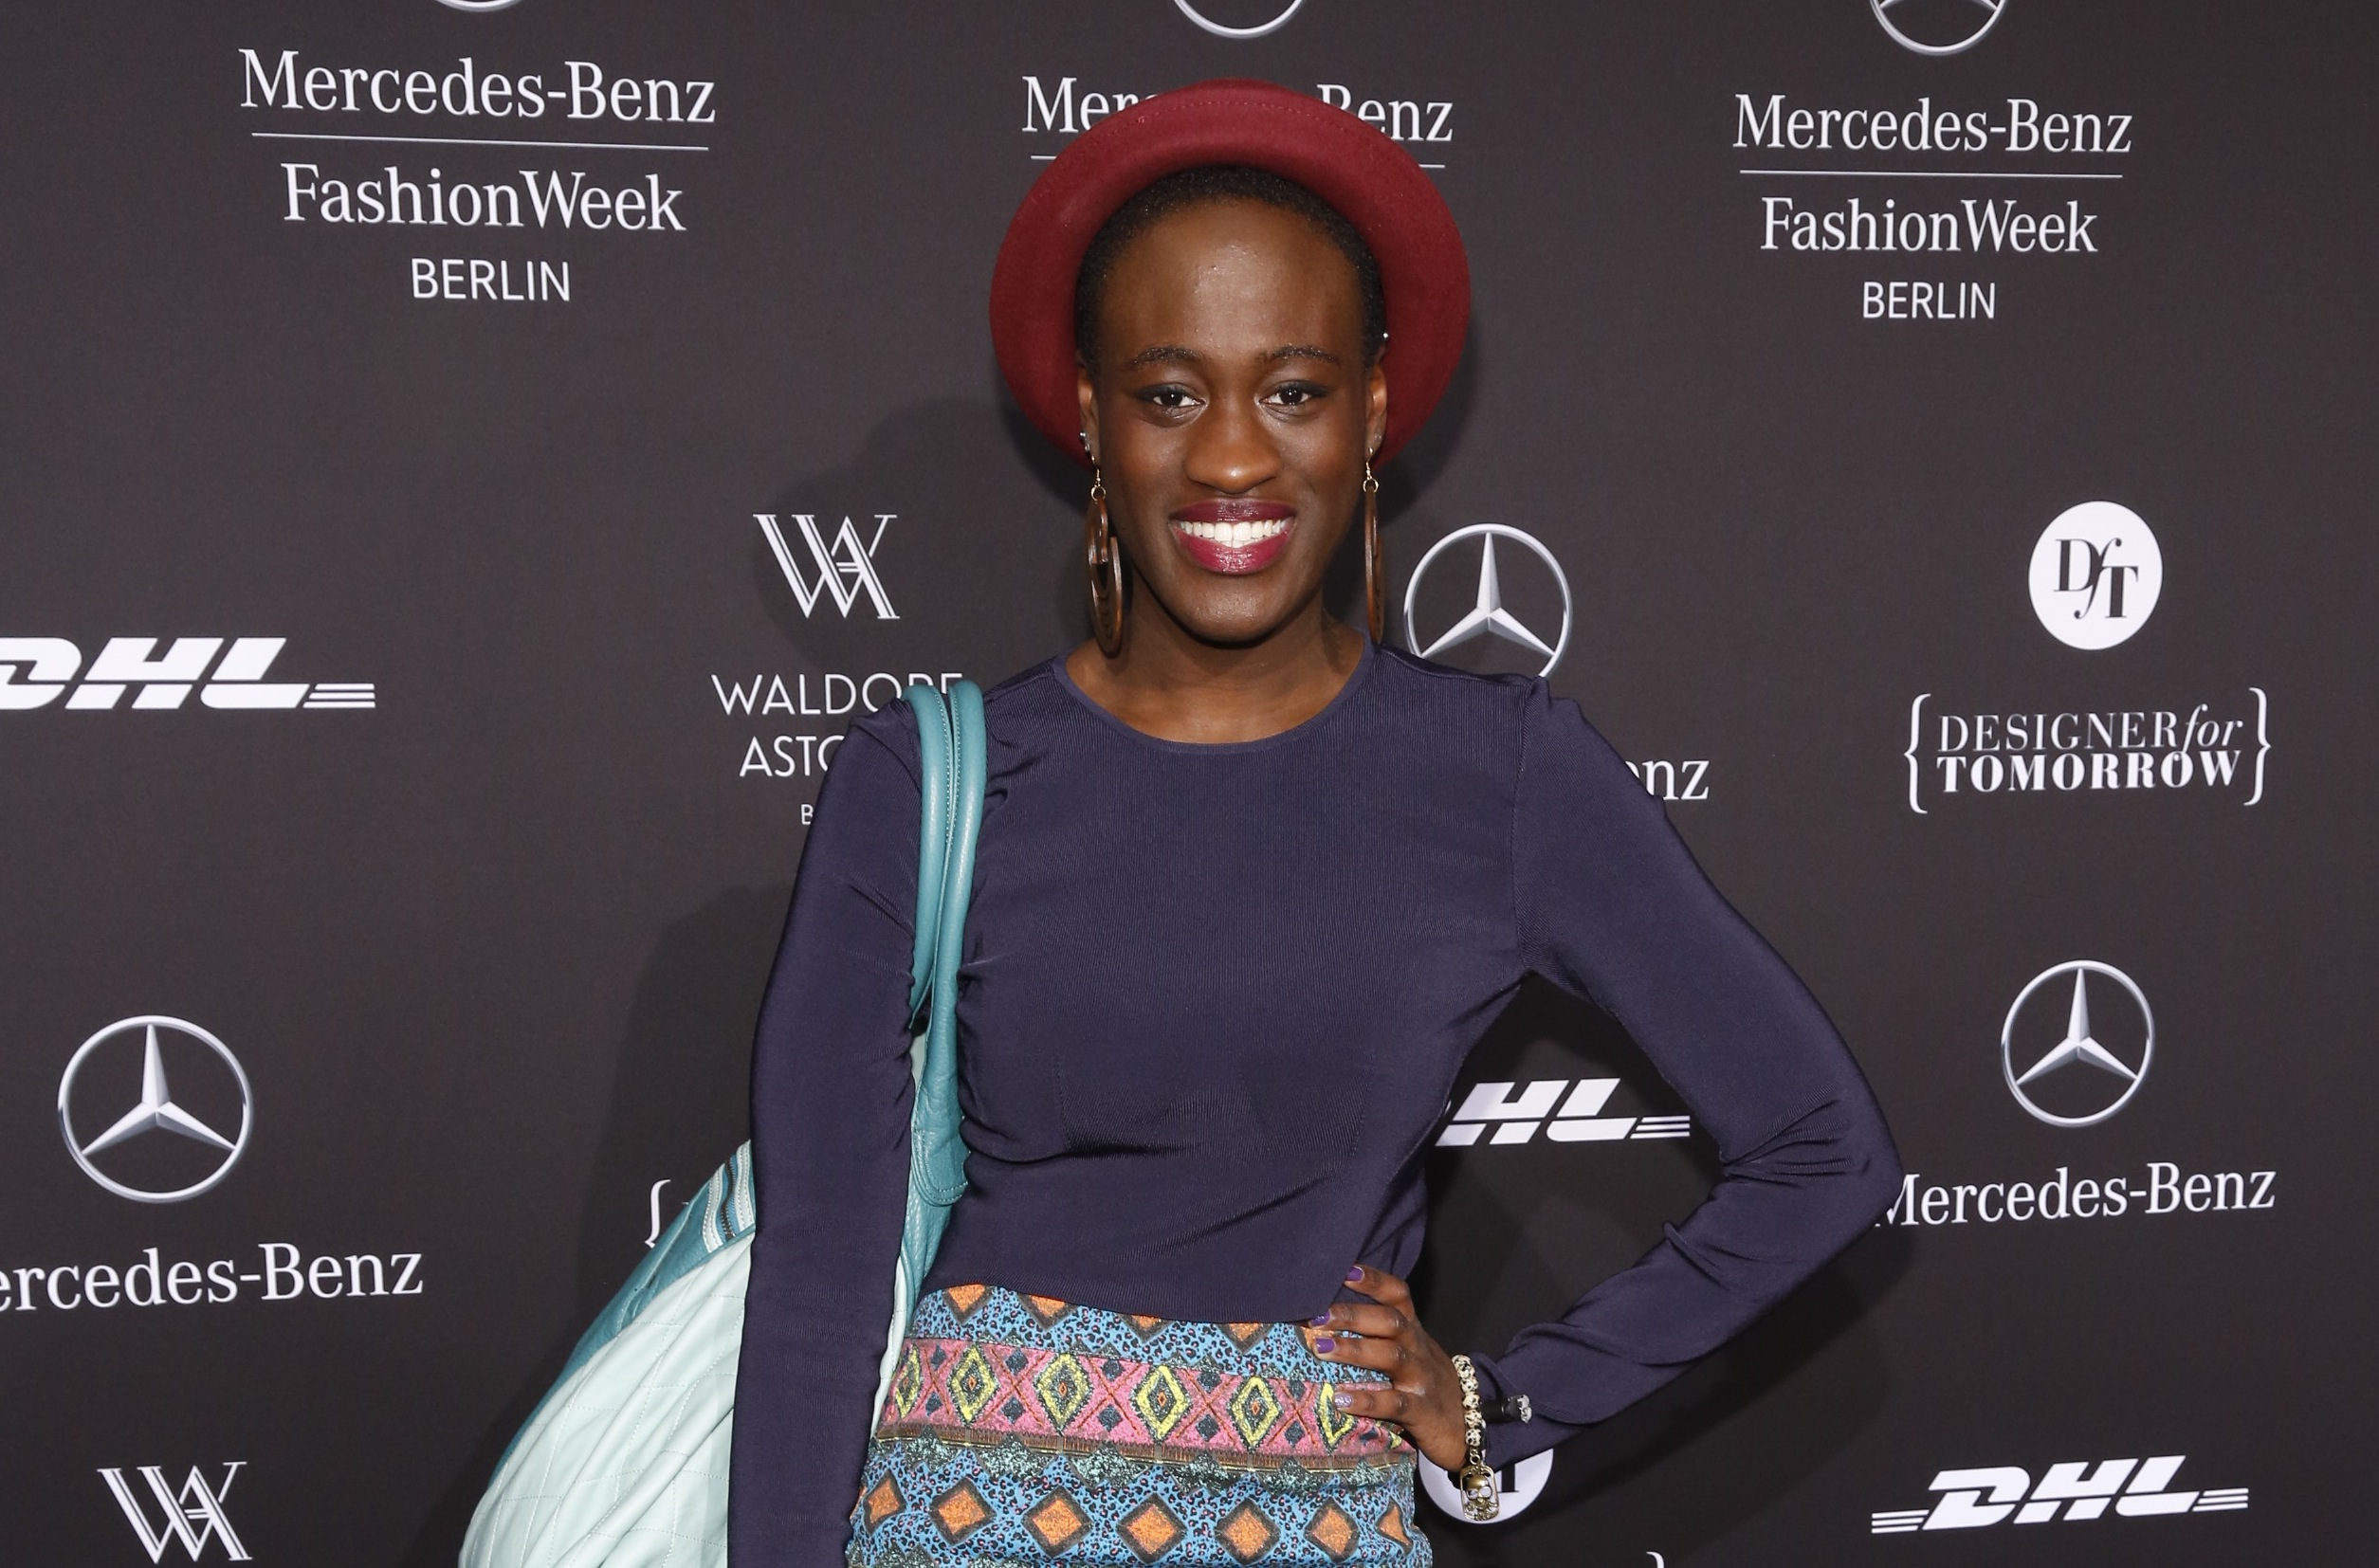 Ivy Quainoo Mercedes-Benz Fashion Week Berlin Autumn/Winter 2013 in Berlin am 16.01.2013 Foto: Nass / Brauer Photos fuer Merc